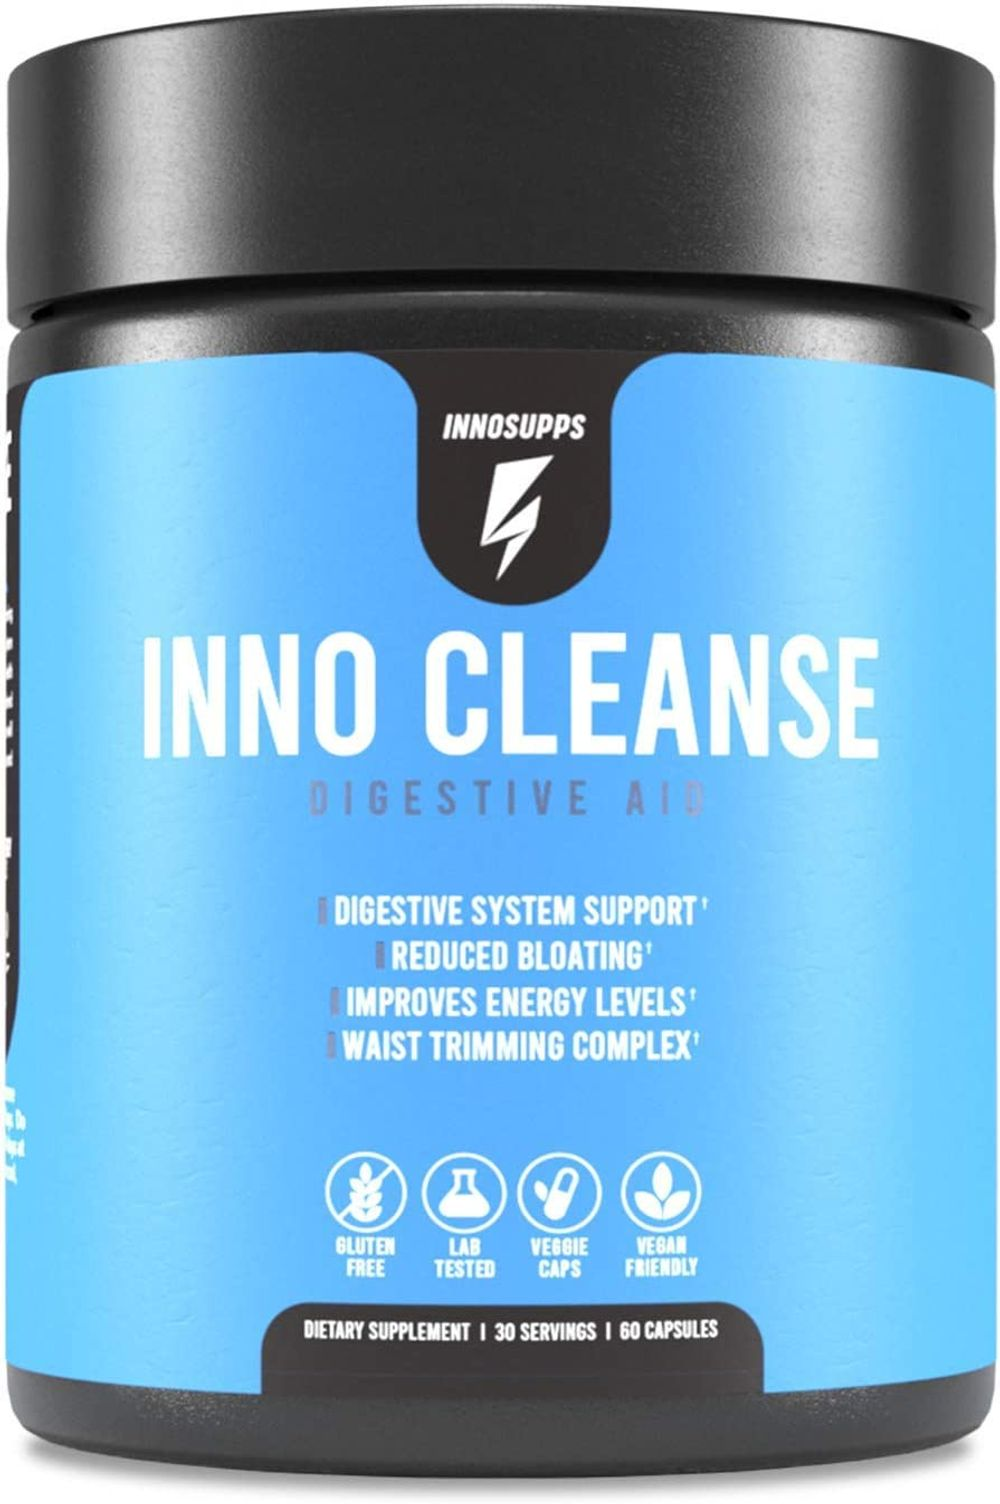 Inno Cleanse - Waist Trimming Complex   Digestive System Support & Aid   Reduced Bloating   Improves Energy Levels   Gluten Free, Vegan Friendly